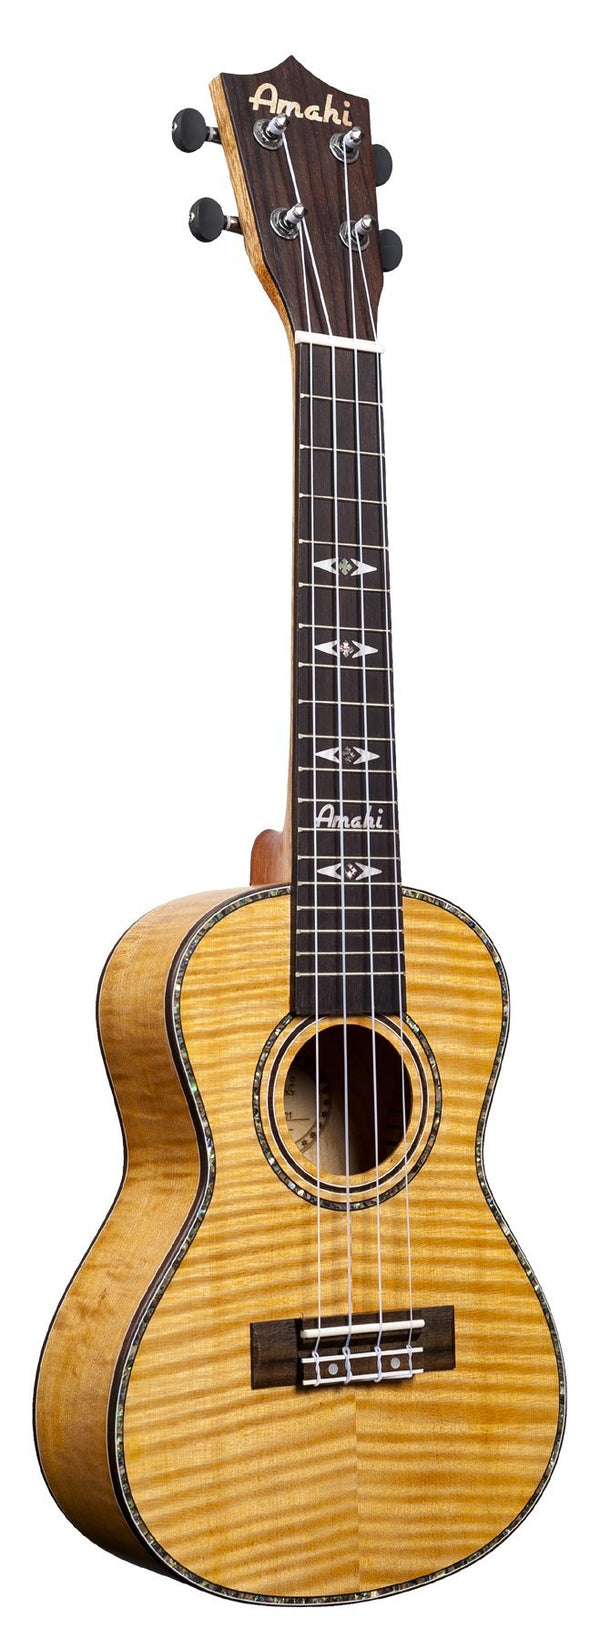 Amahi Flamed Tiger Maple Concert Ukulele C-01